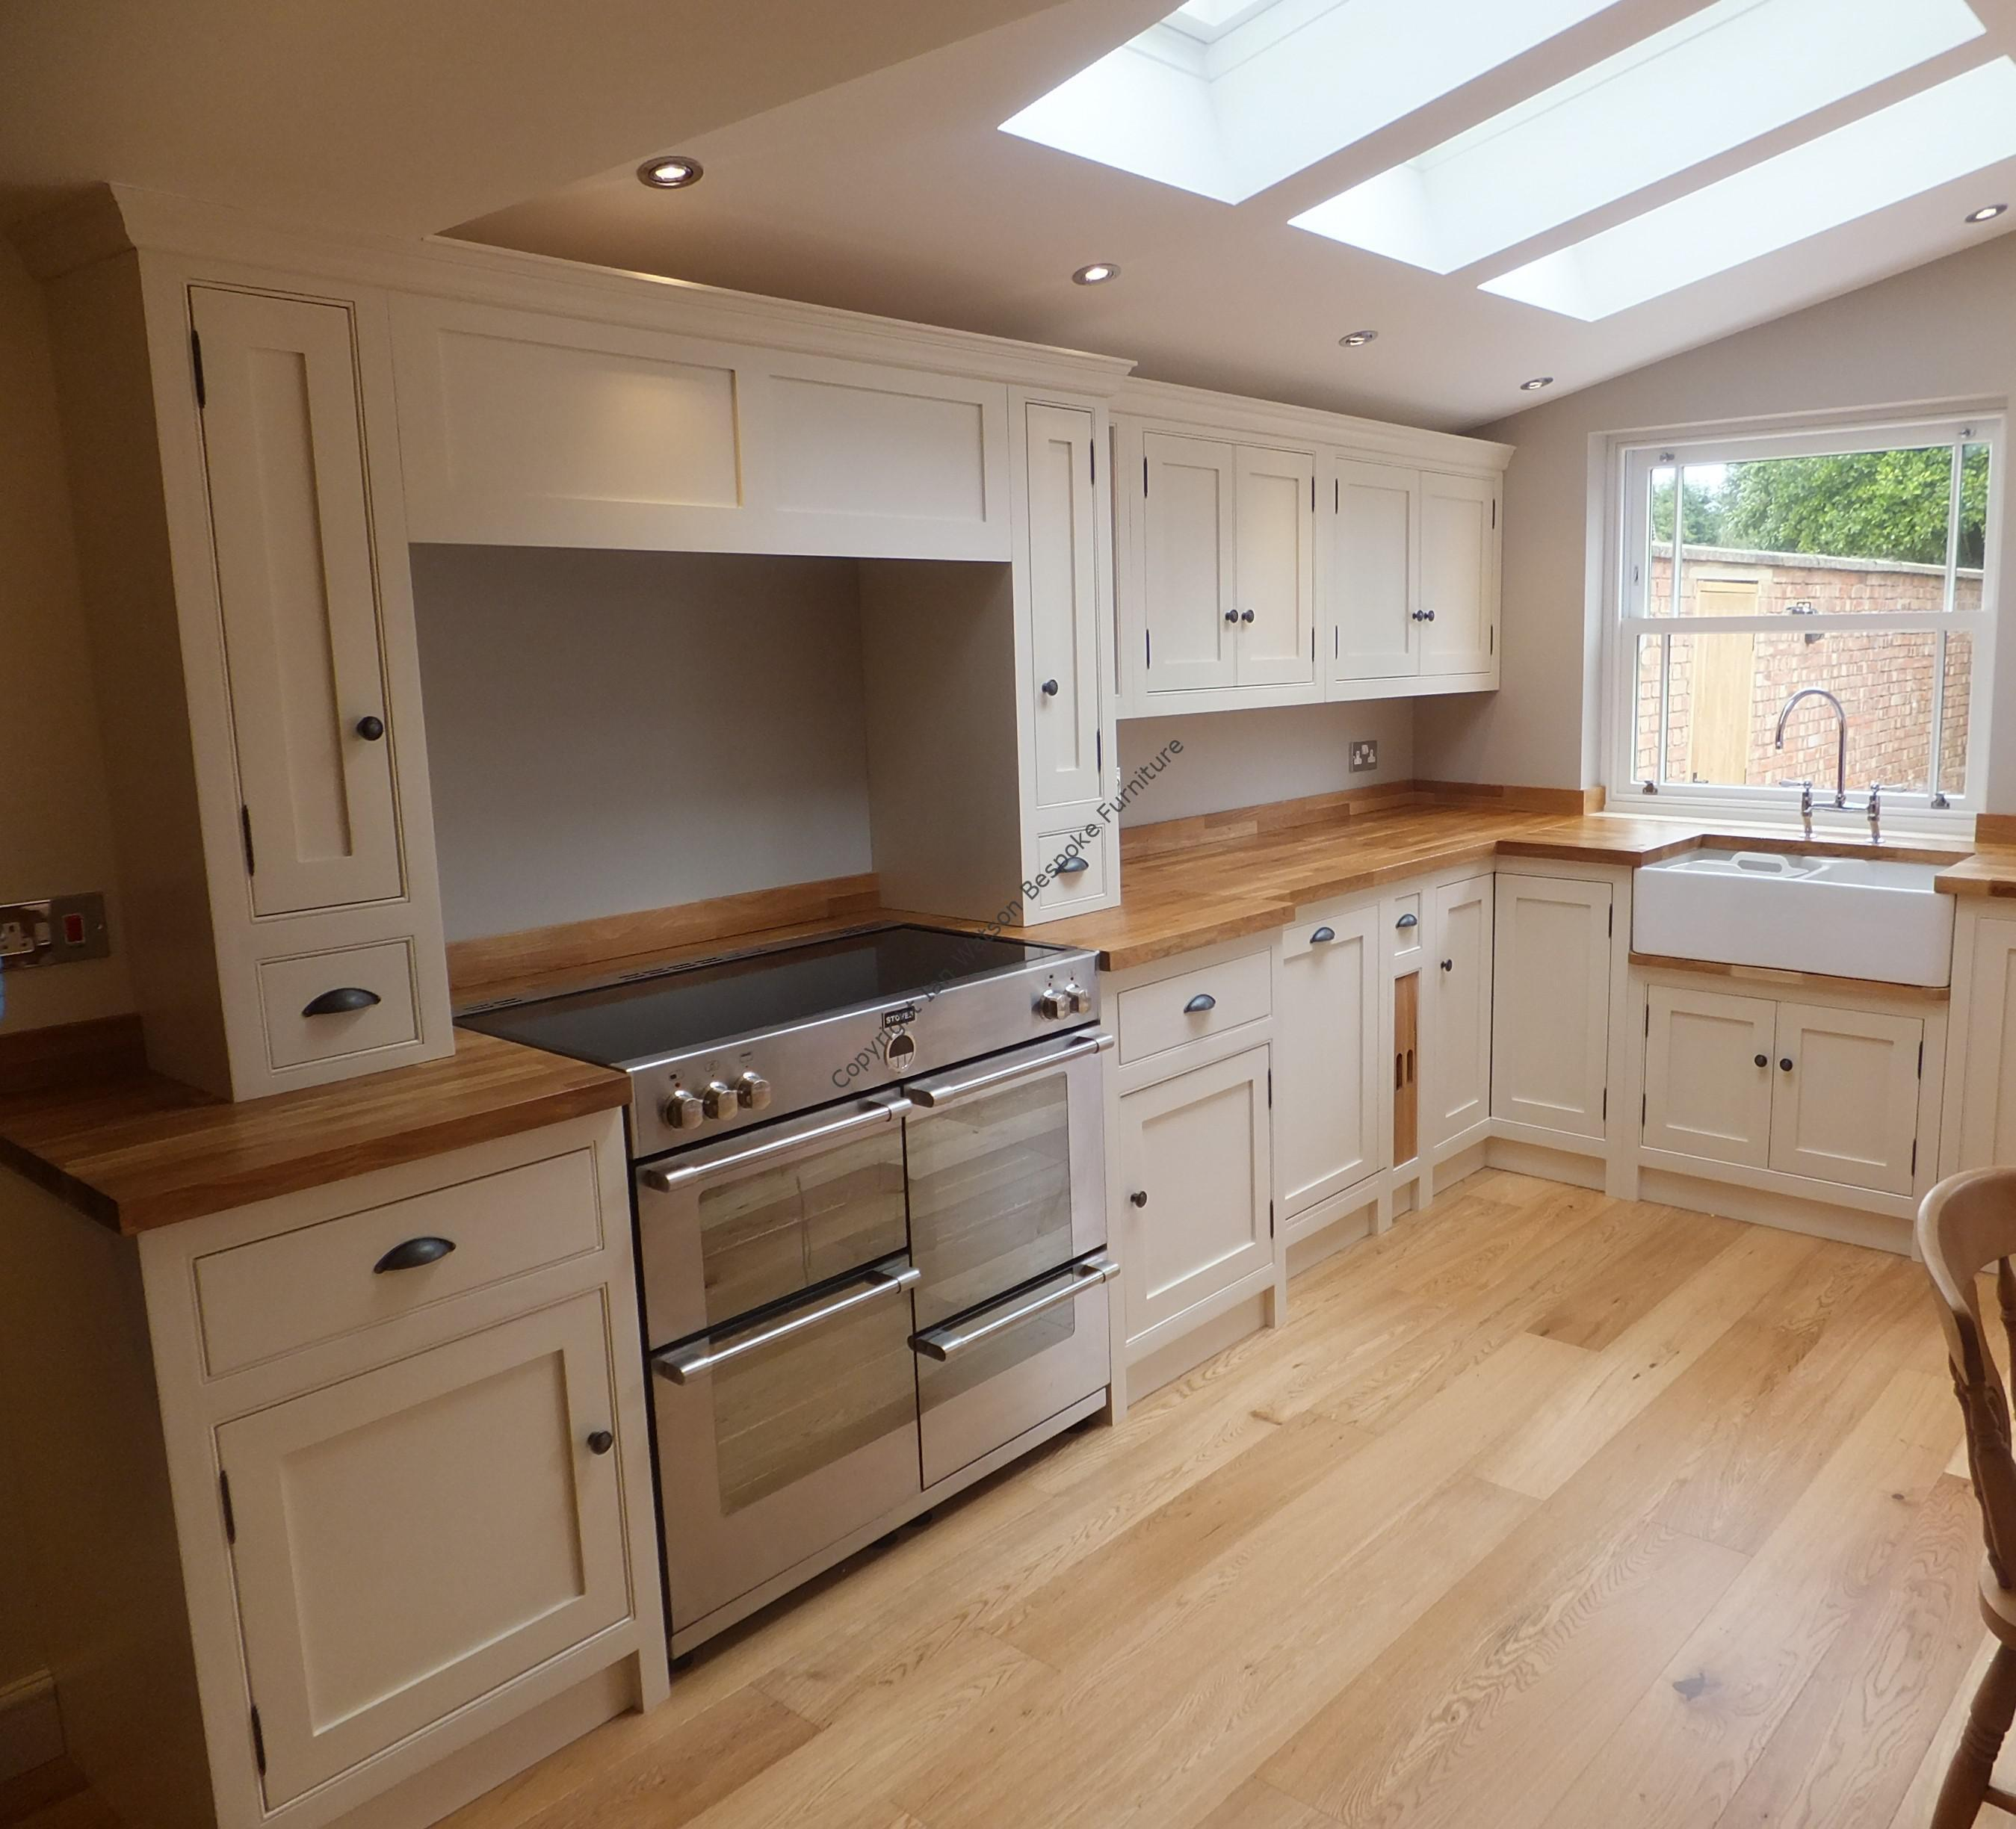 Ian Watson Bespoke Furniture | Bespoke Kitchens | Handmade Kitchens